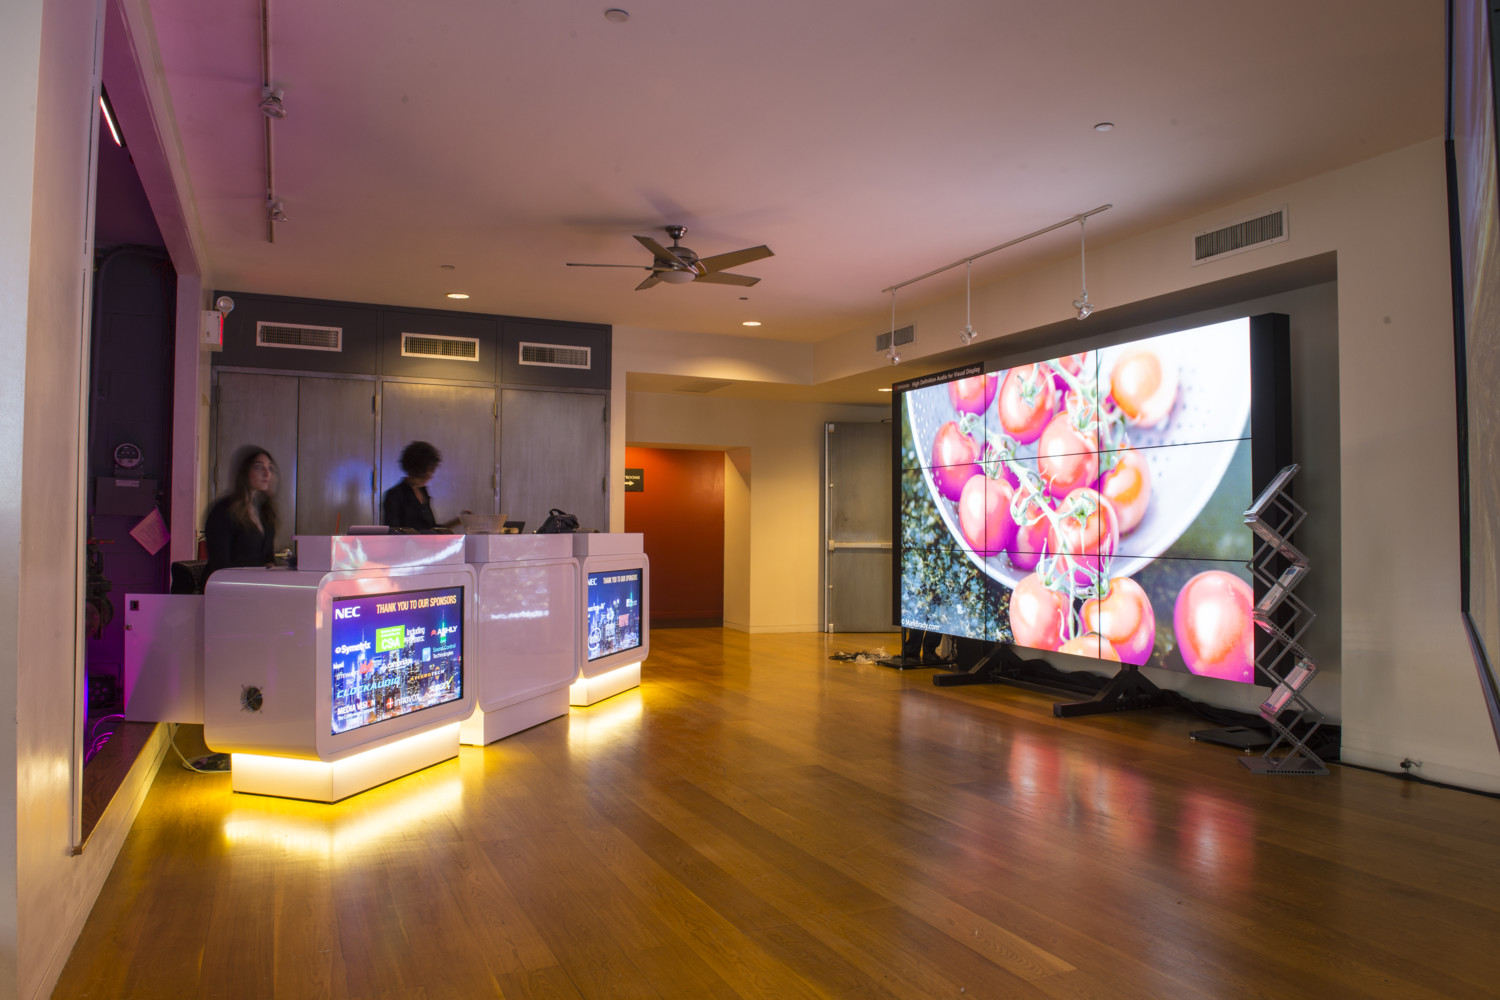 NEC Display Solutions 2015 Event - image 1